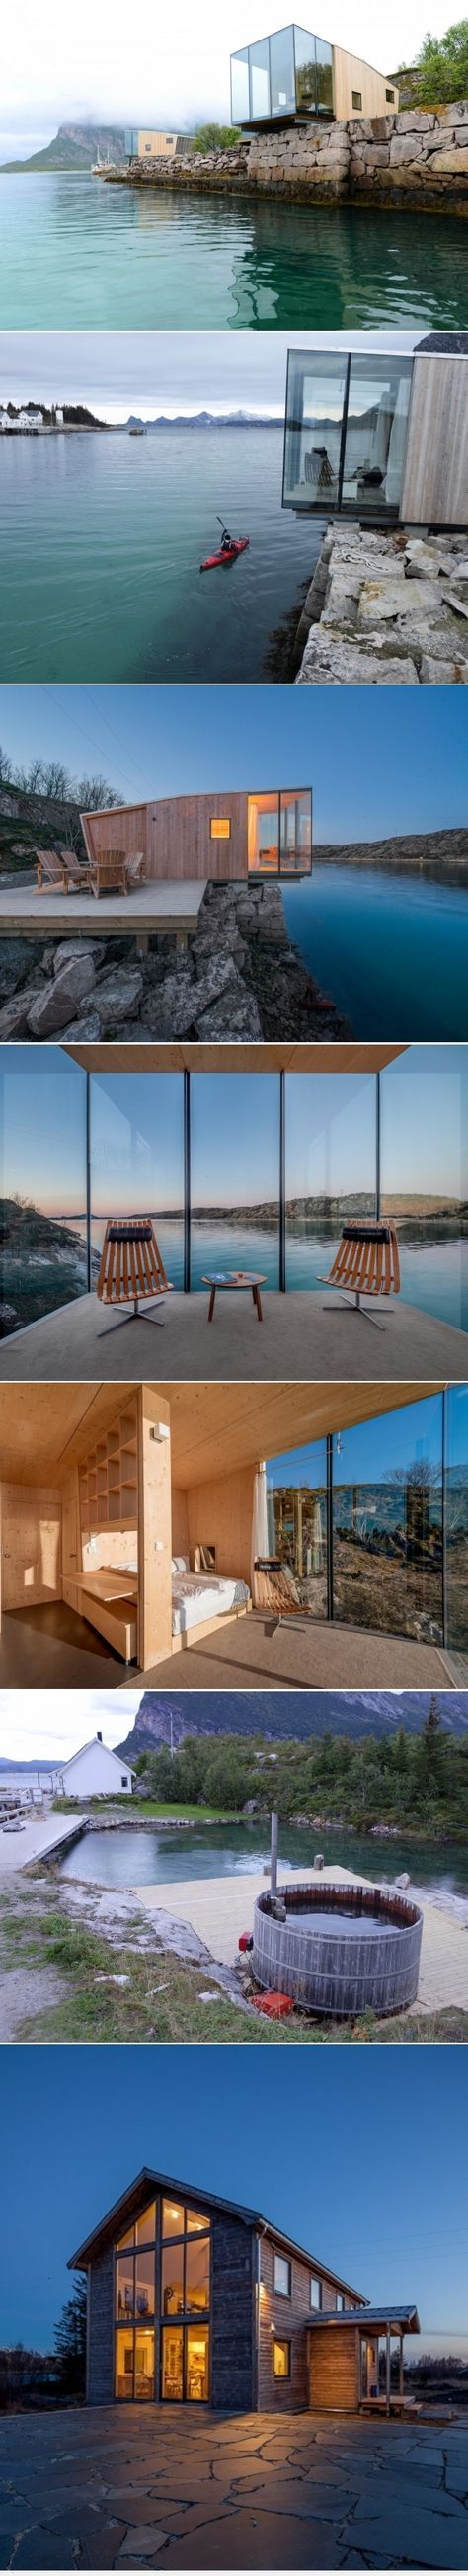 Dwell - Have You Ever Wanted to Stay in a Norwegian Sea Cabin? This boutique hotel on Norway's Manshausen Island is made up of four sea cabins that jut out from their natural ledge. Architect Snorre Stinessen carefully positioned them on an existing stone quay and built them to fit two to four travelers, or a family of five. To allow them to cantilever off the edge, their cross laminated timber floor plates are mounted onto two steel beams.